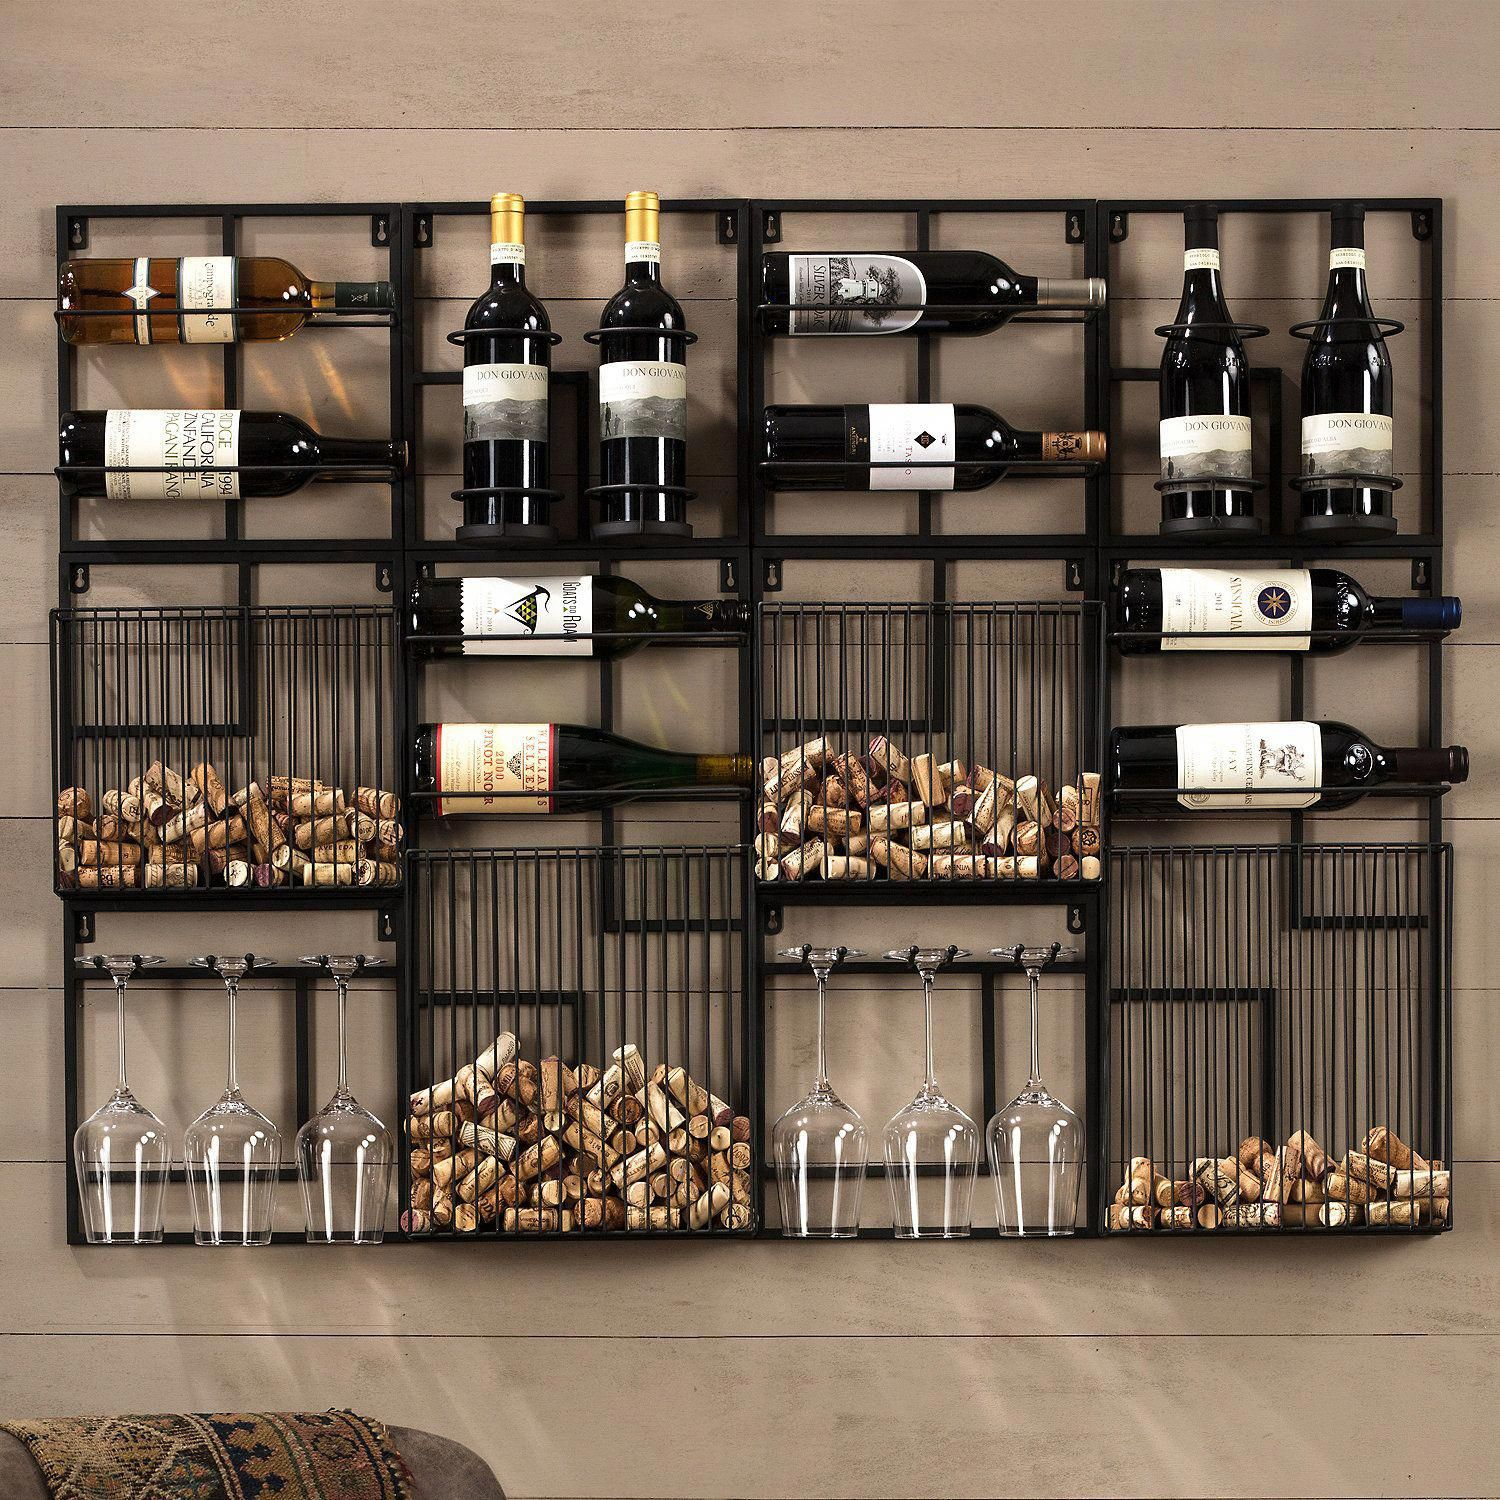 Wine Decor Kitchen Rugs Wine Decor Gifts For Women Wineshop Winetours Winedecor Wine Storage Wall Wine Rack Design Bars For Home